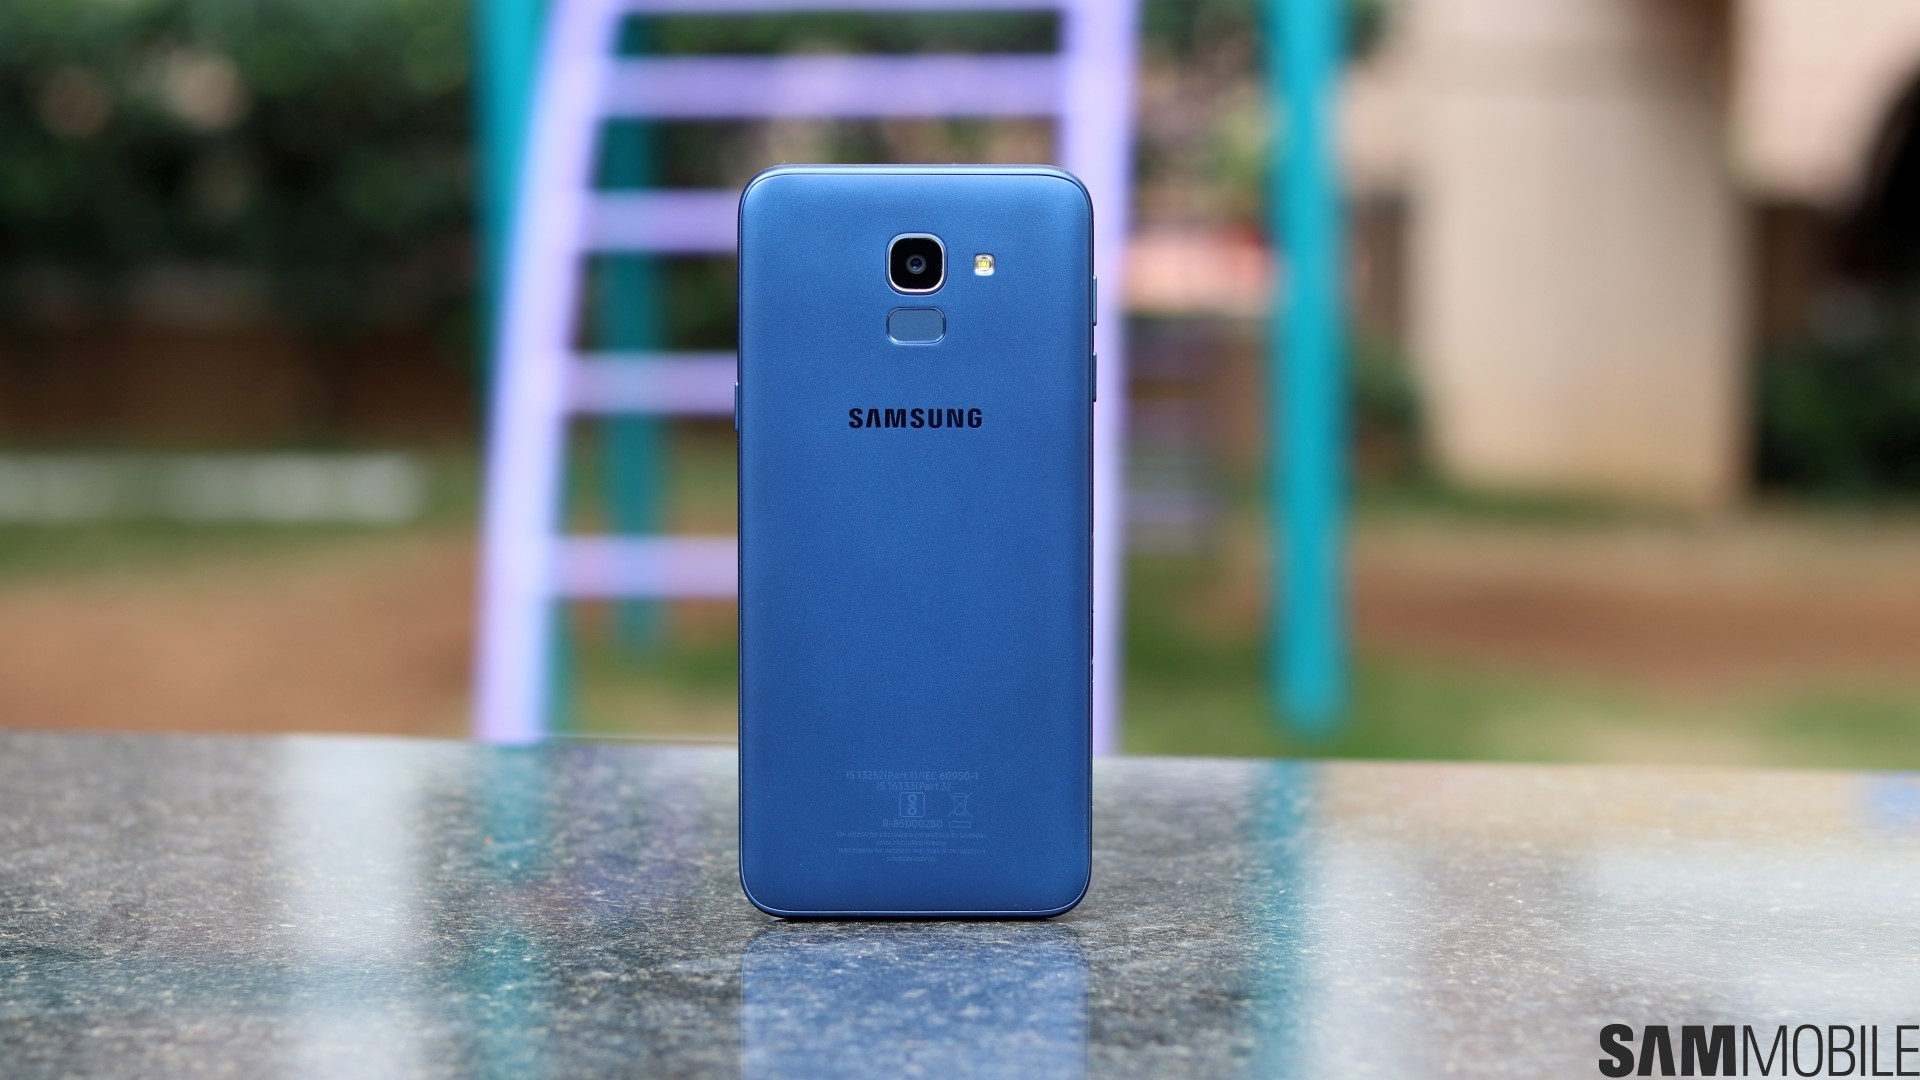 Latest Galaxy J6 update brings August 2018 security patch - SamMobile